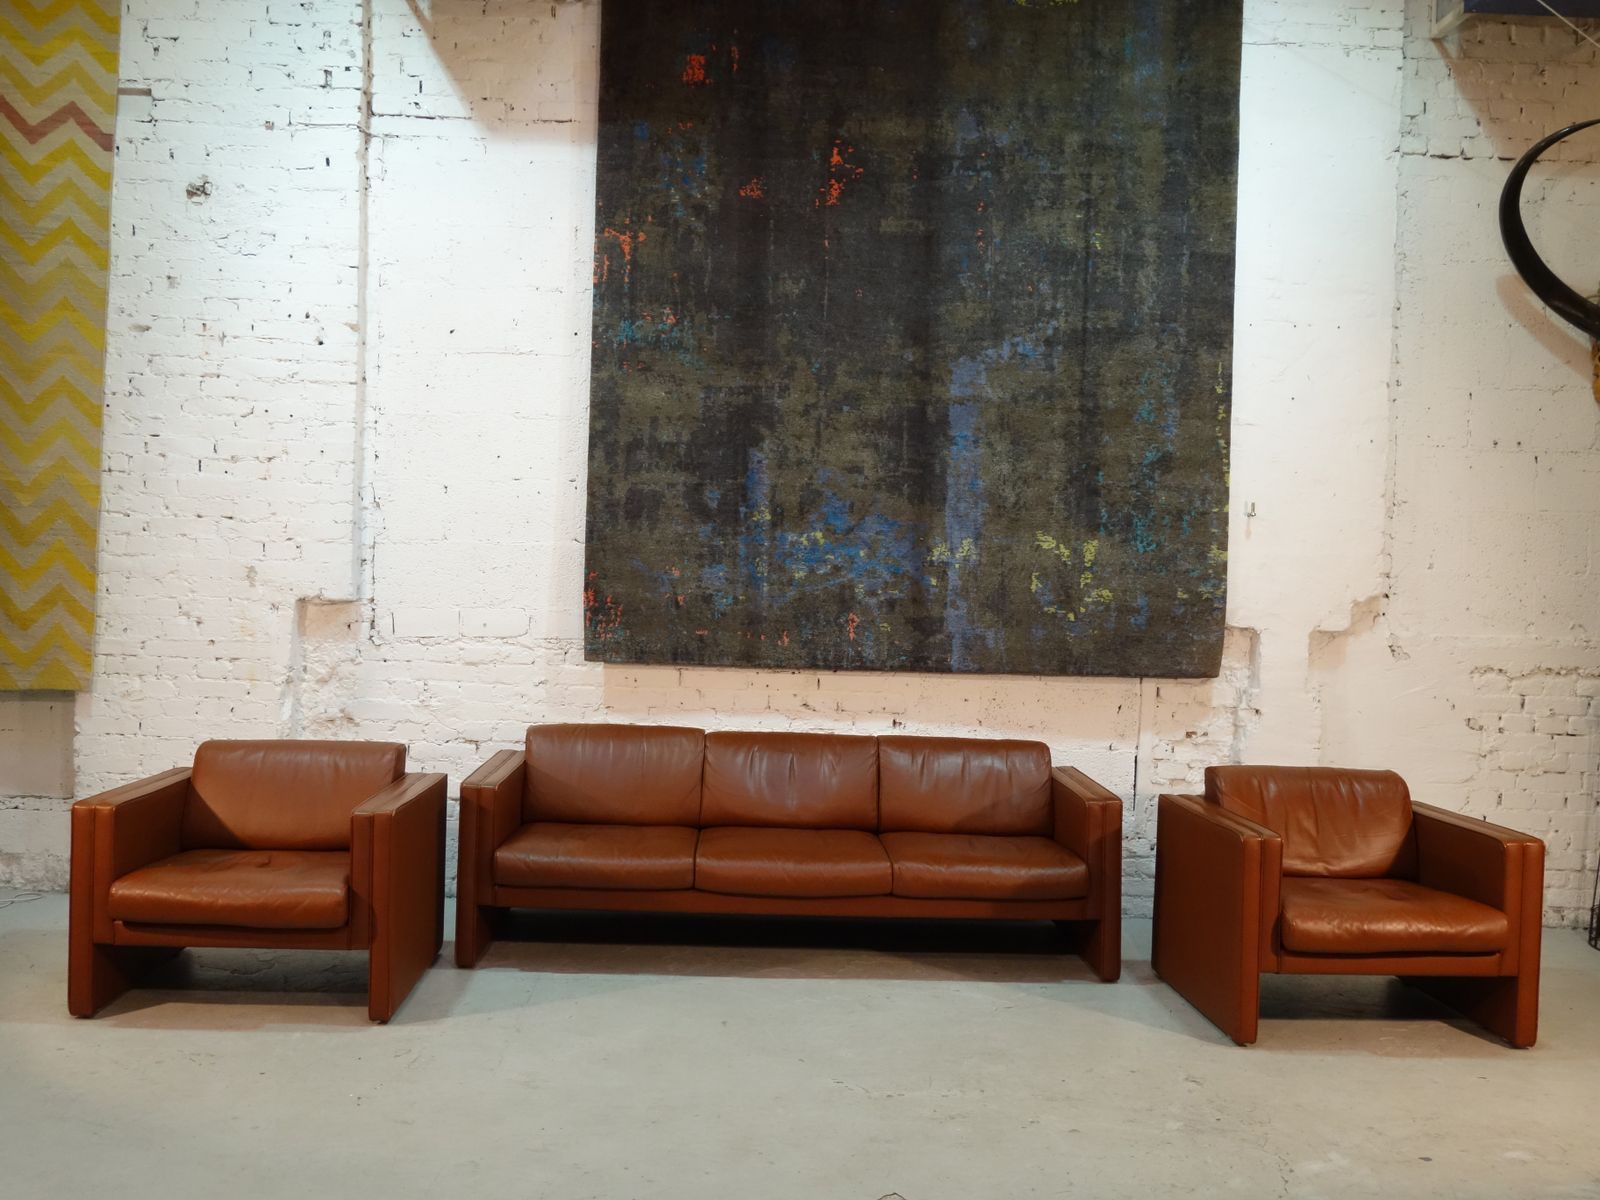 Sofa two armchairs from walter knoll 1980s for sale at pamono parisarafo Gallery